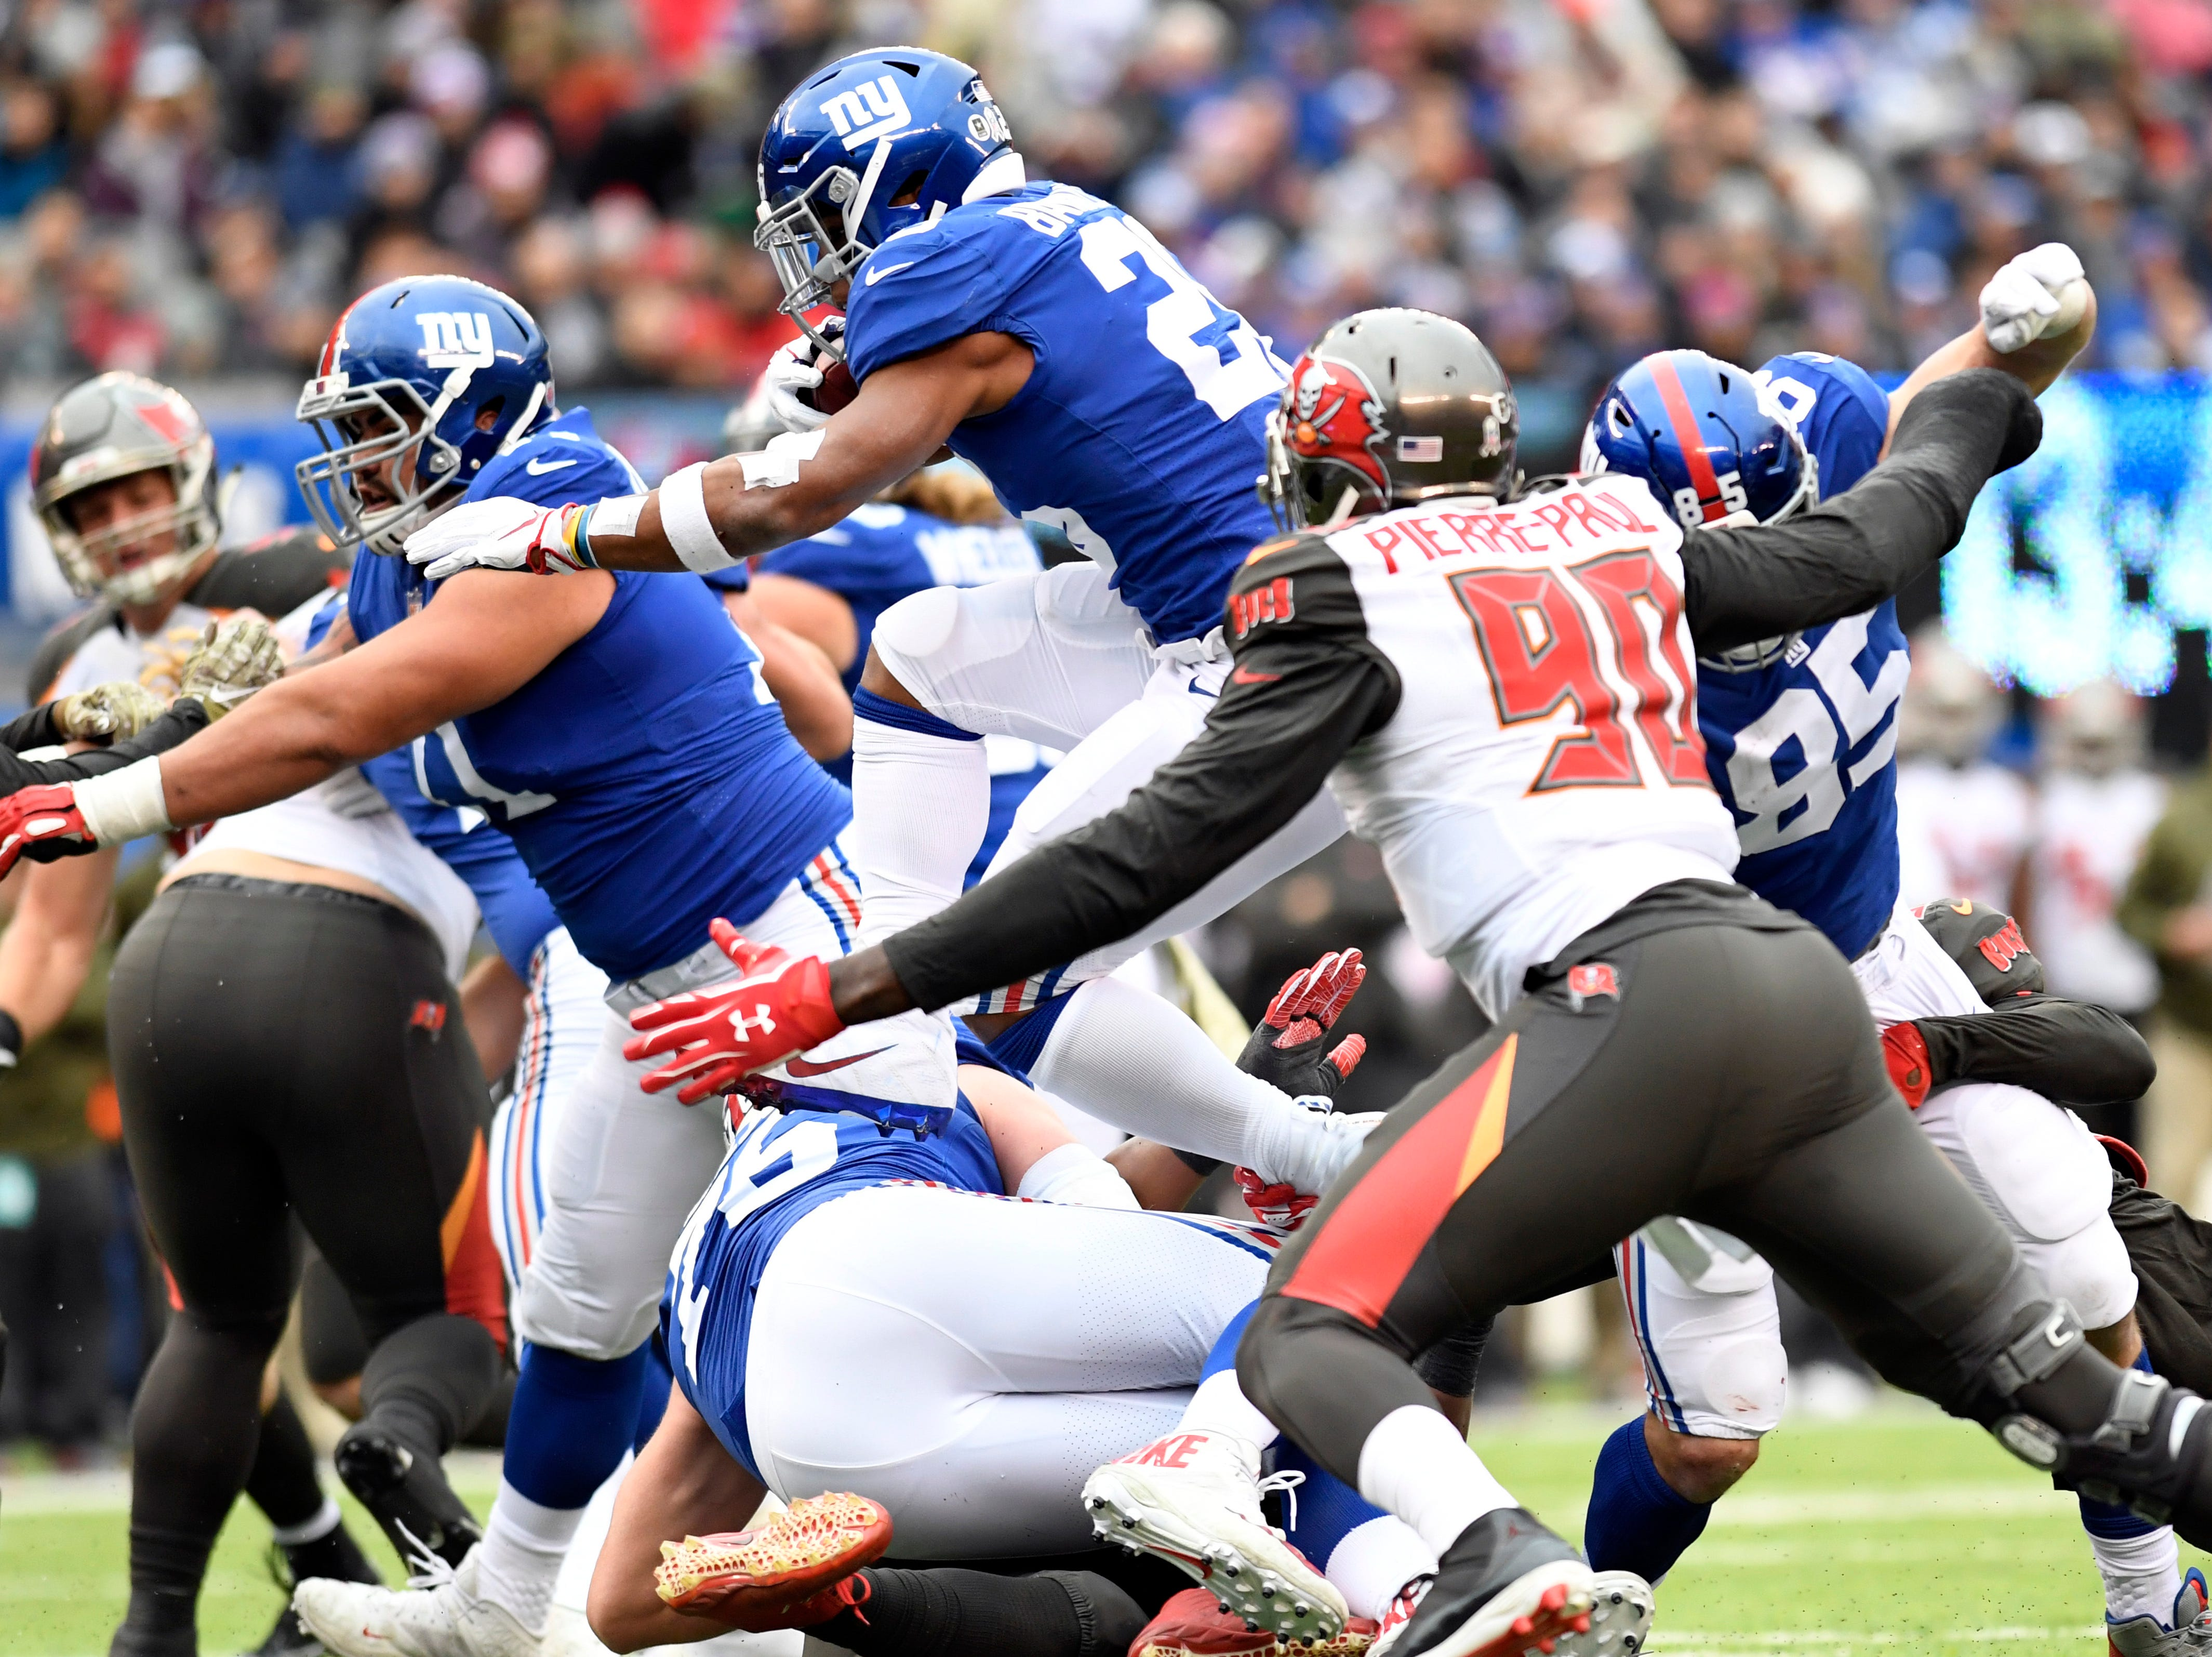 New York Giants running back Saquon Barkley (26) leaps over his own teammate on his way to touchdown in the first half against the Tampa Bay Buccaneers on Sunday, Nov. 18, 2018 in East Rutherford.